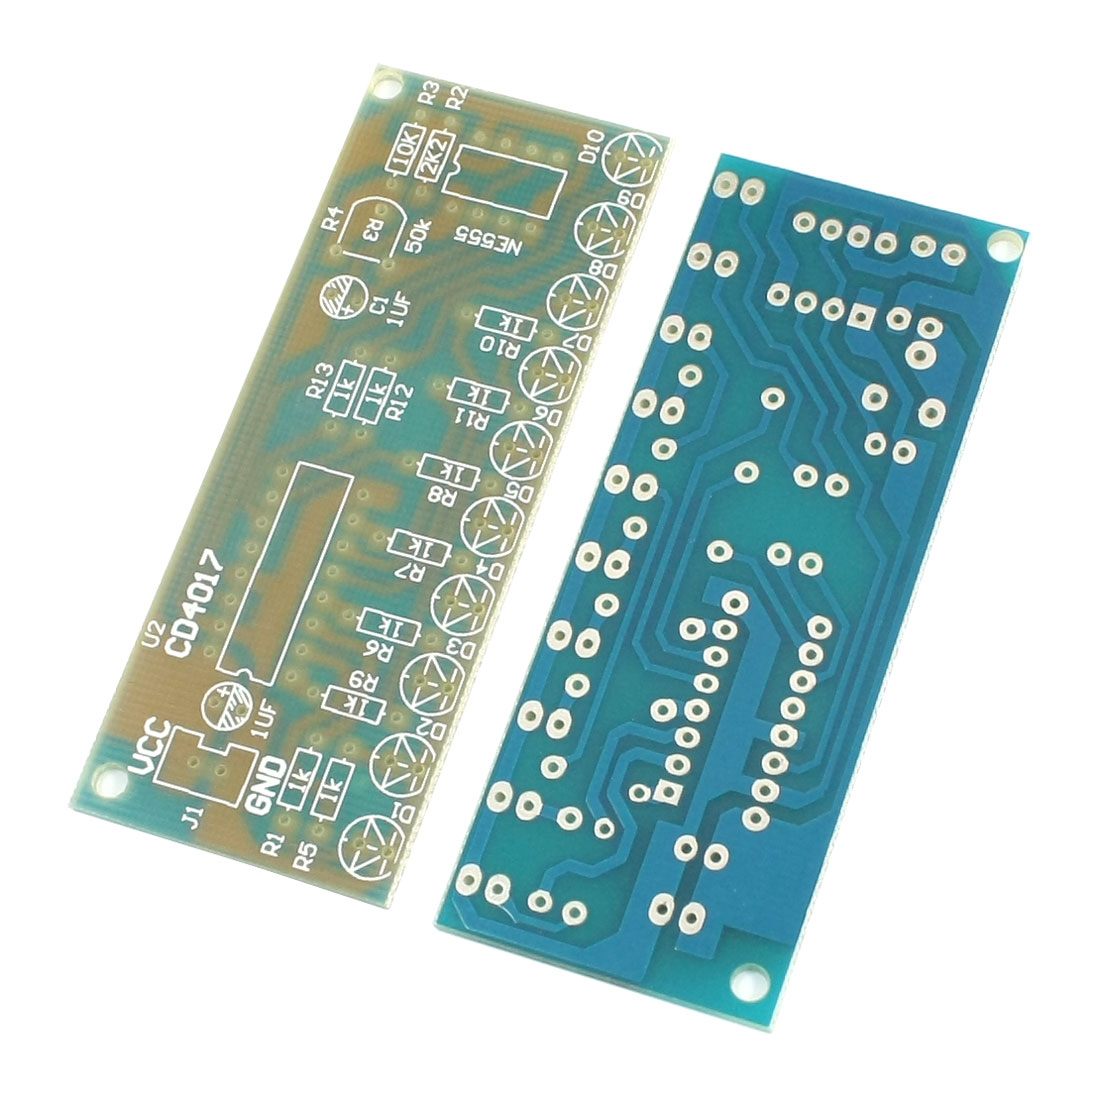 DIY Assembly 51 MCU NE555 CD4017 LED Lamp Module Blank Board 2pcs